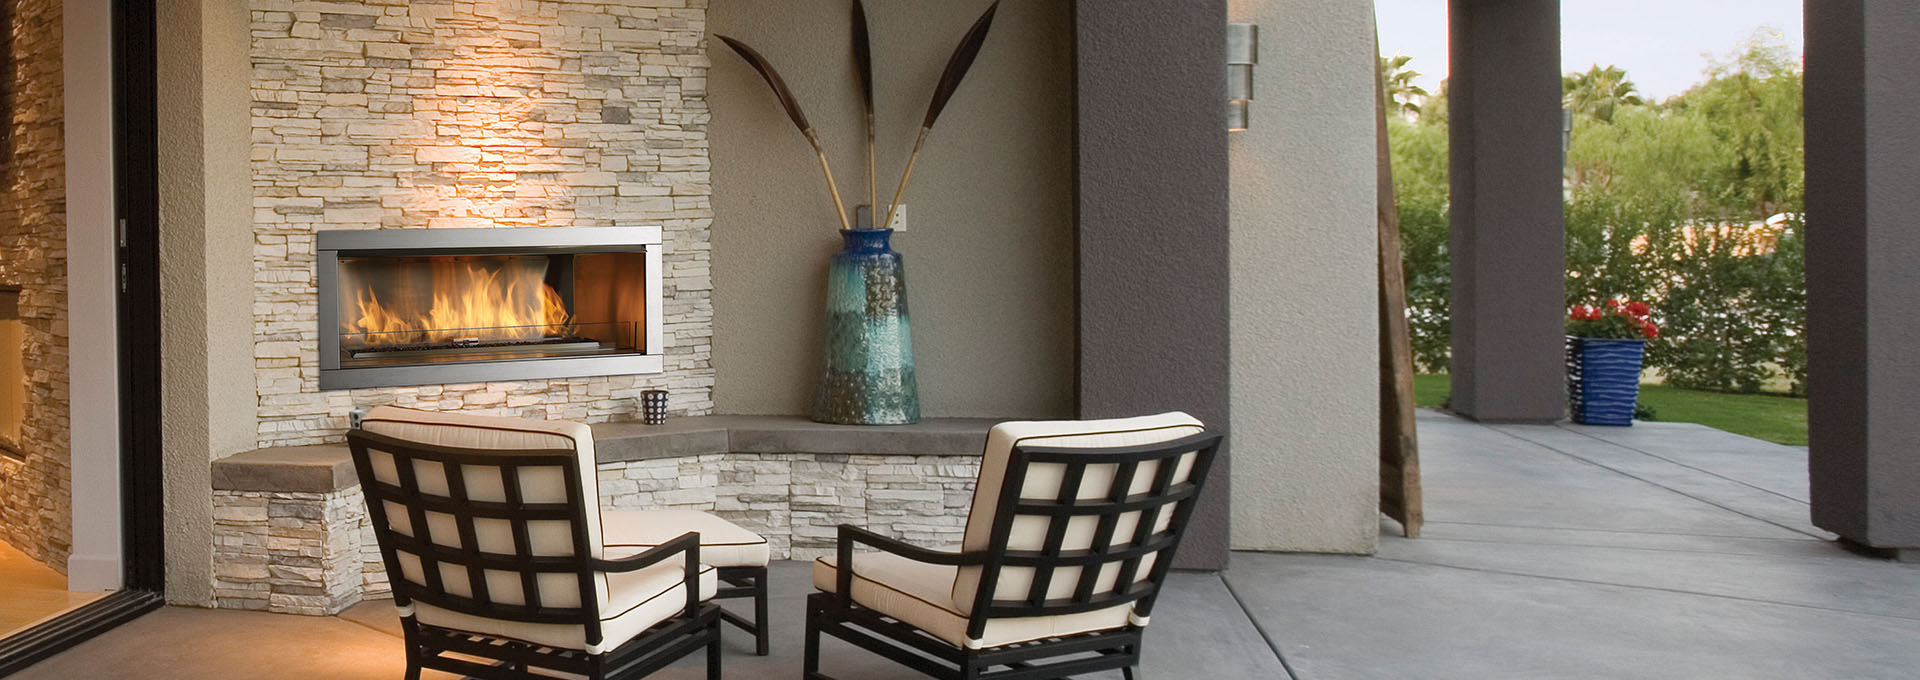 Horizon HZO42 Outdoor Gas Fireplace-3